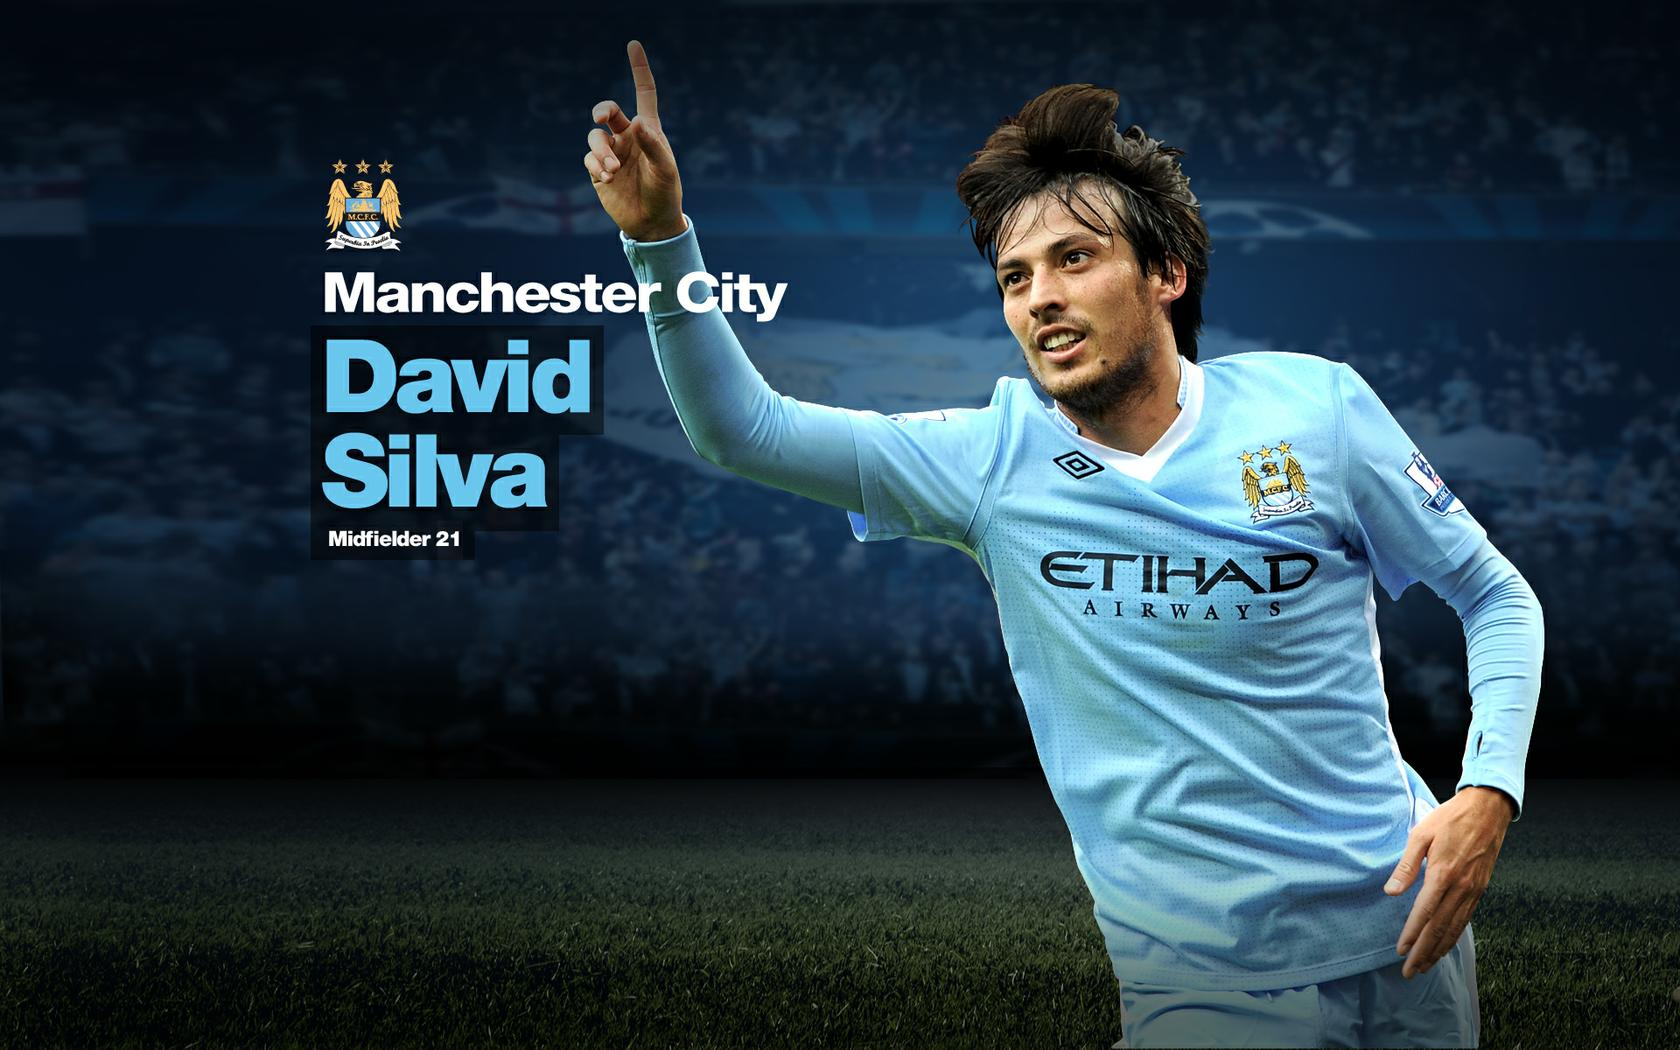 David Silva Wallpaper HD #11512 Wallpaper